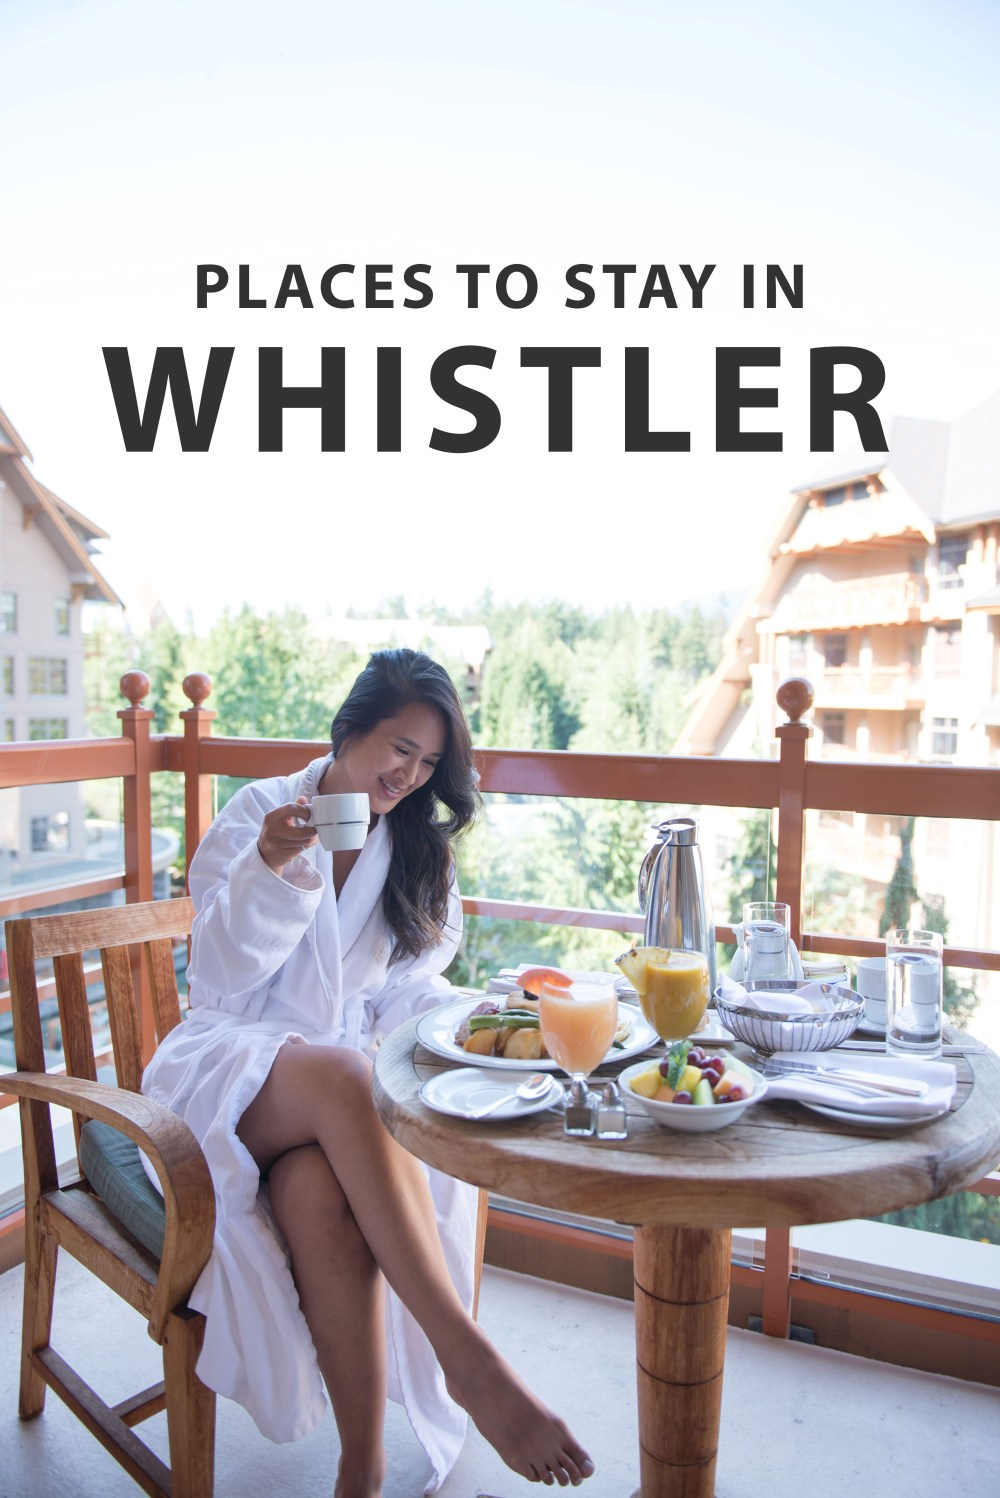 WHISTLER- PLACES TO STAY.jpg